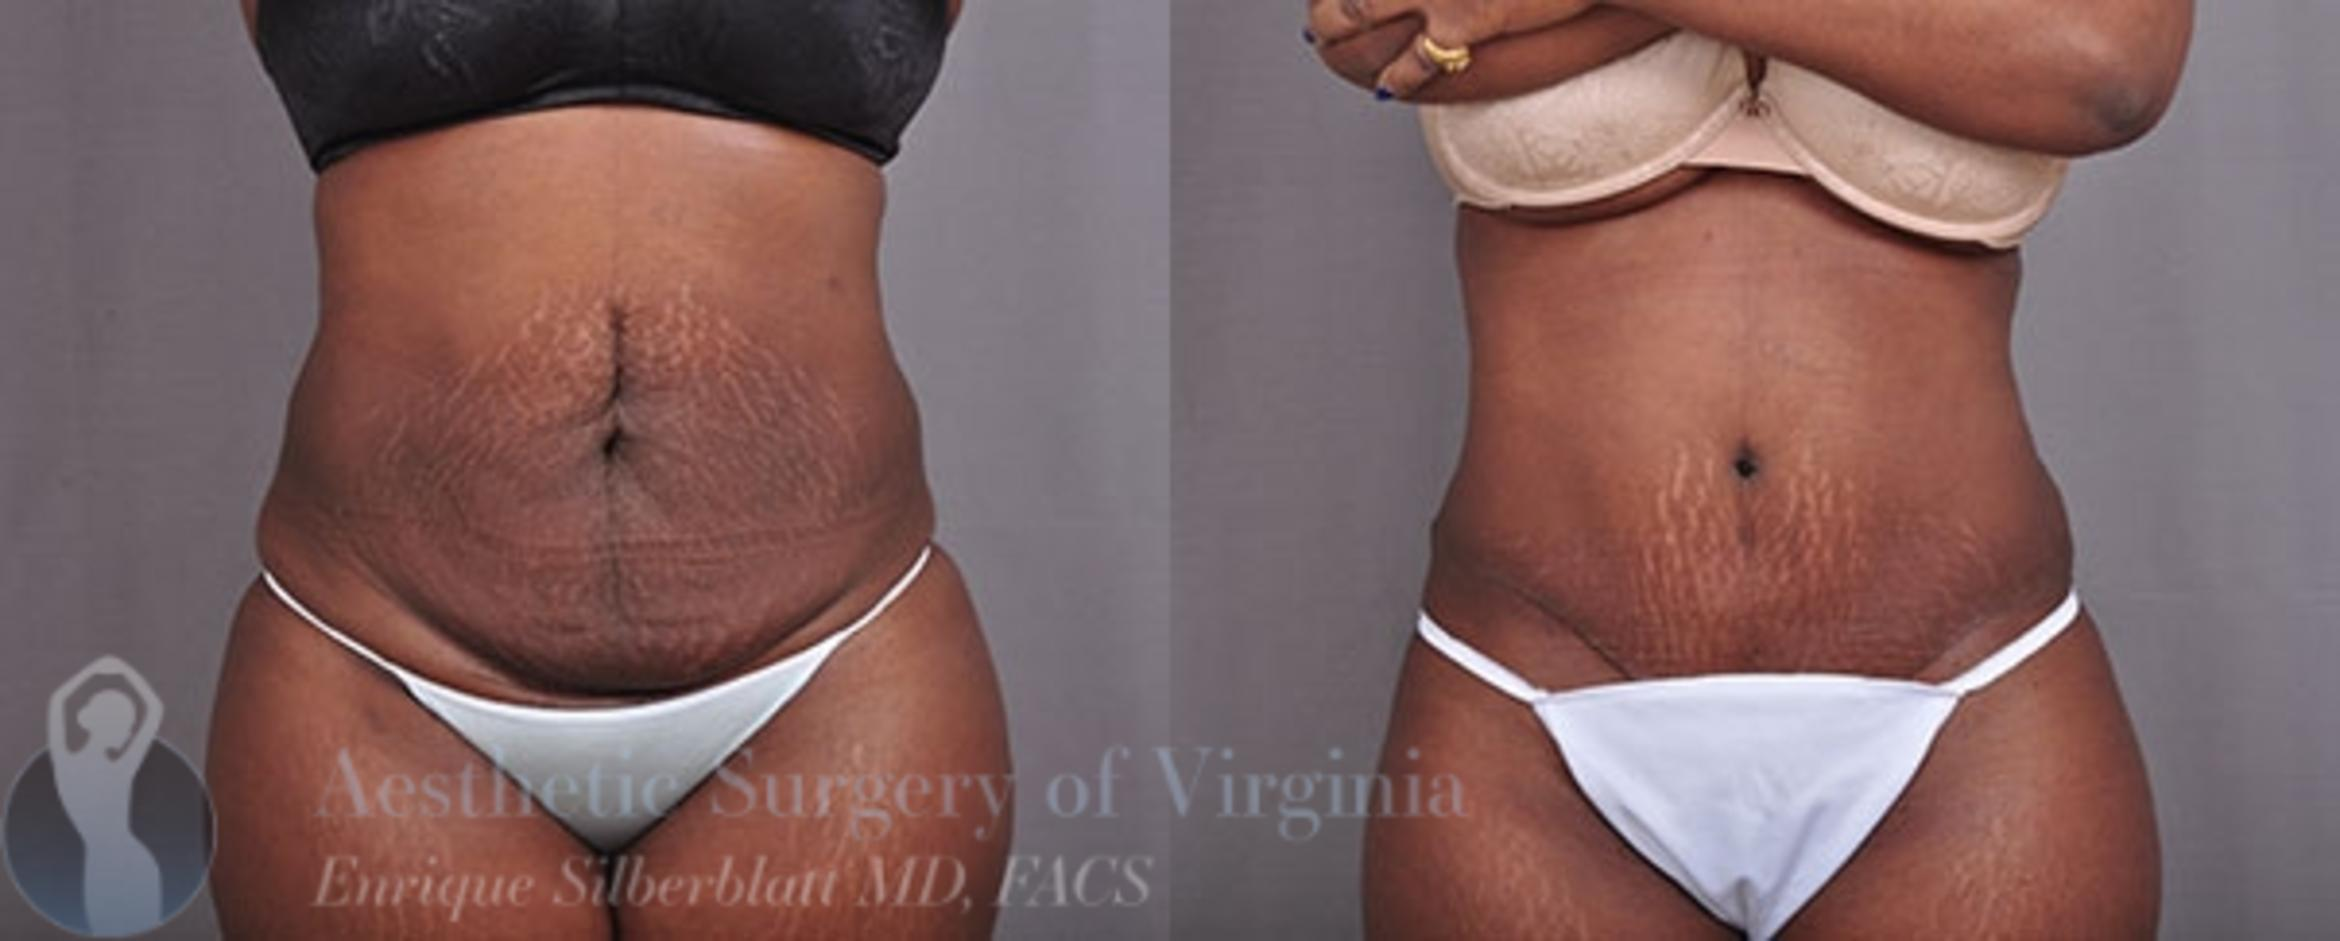 Tummy Tuck Case 30 Before & After View #1 | Roanoke, VA | Aesthetic Surgery of Virginia: Enrique Silberblatt, MD